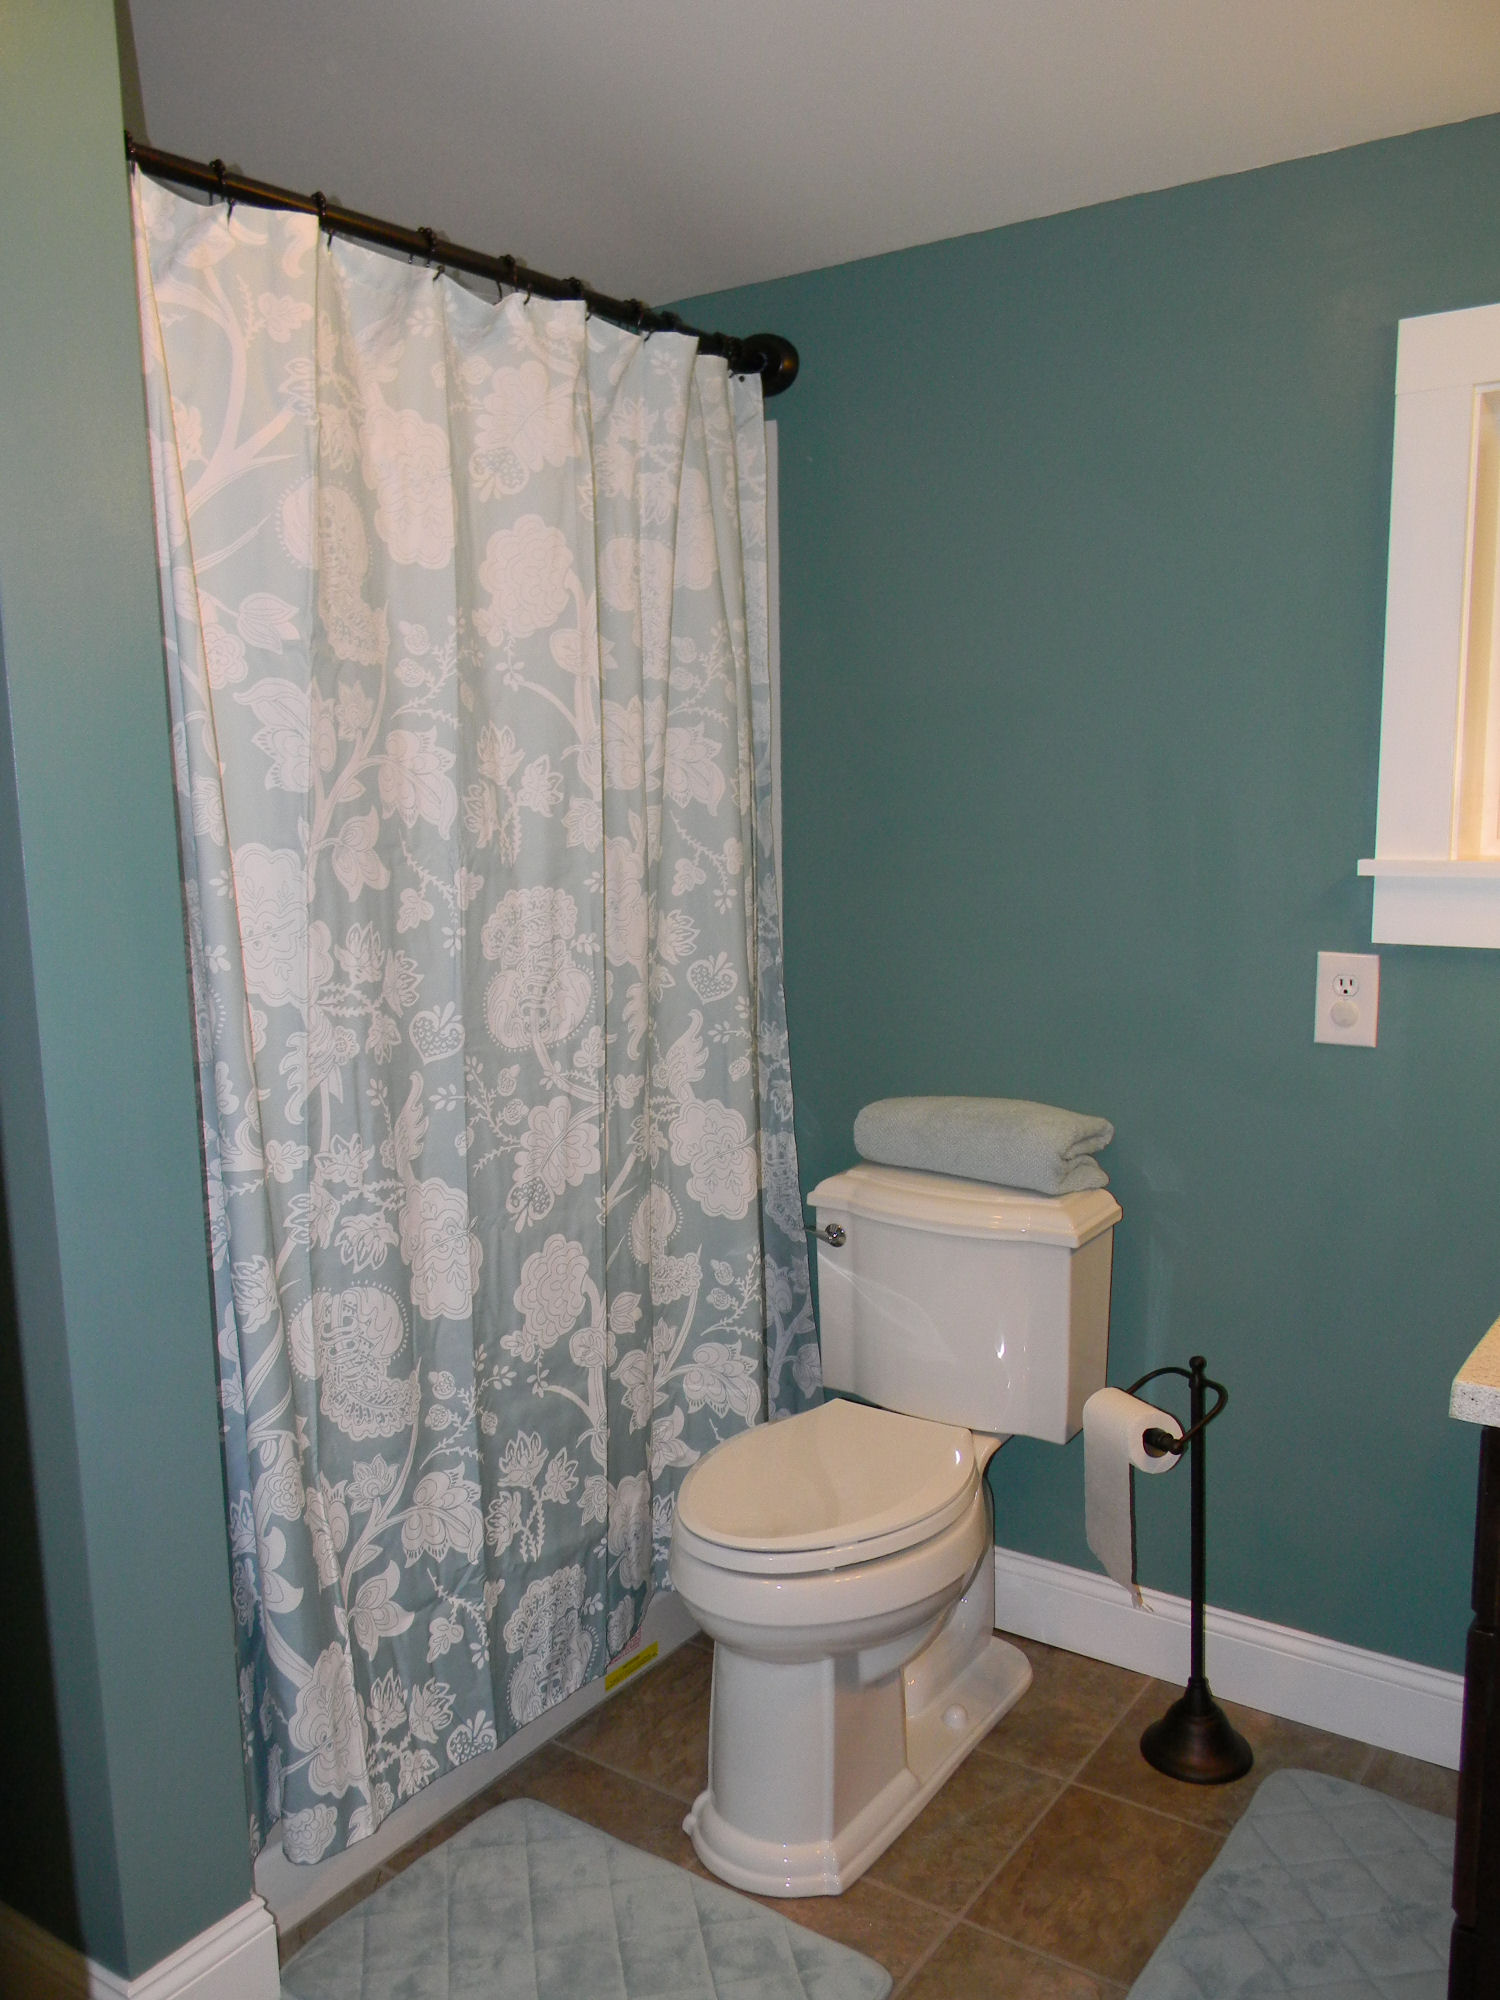 Shower And Toilet My Mobile Home Makeover - Mobile home bathroom showers